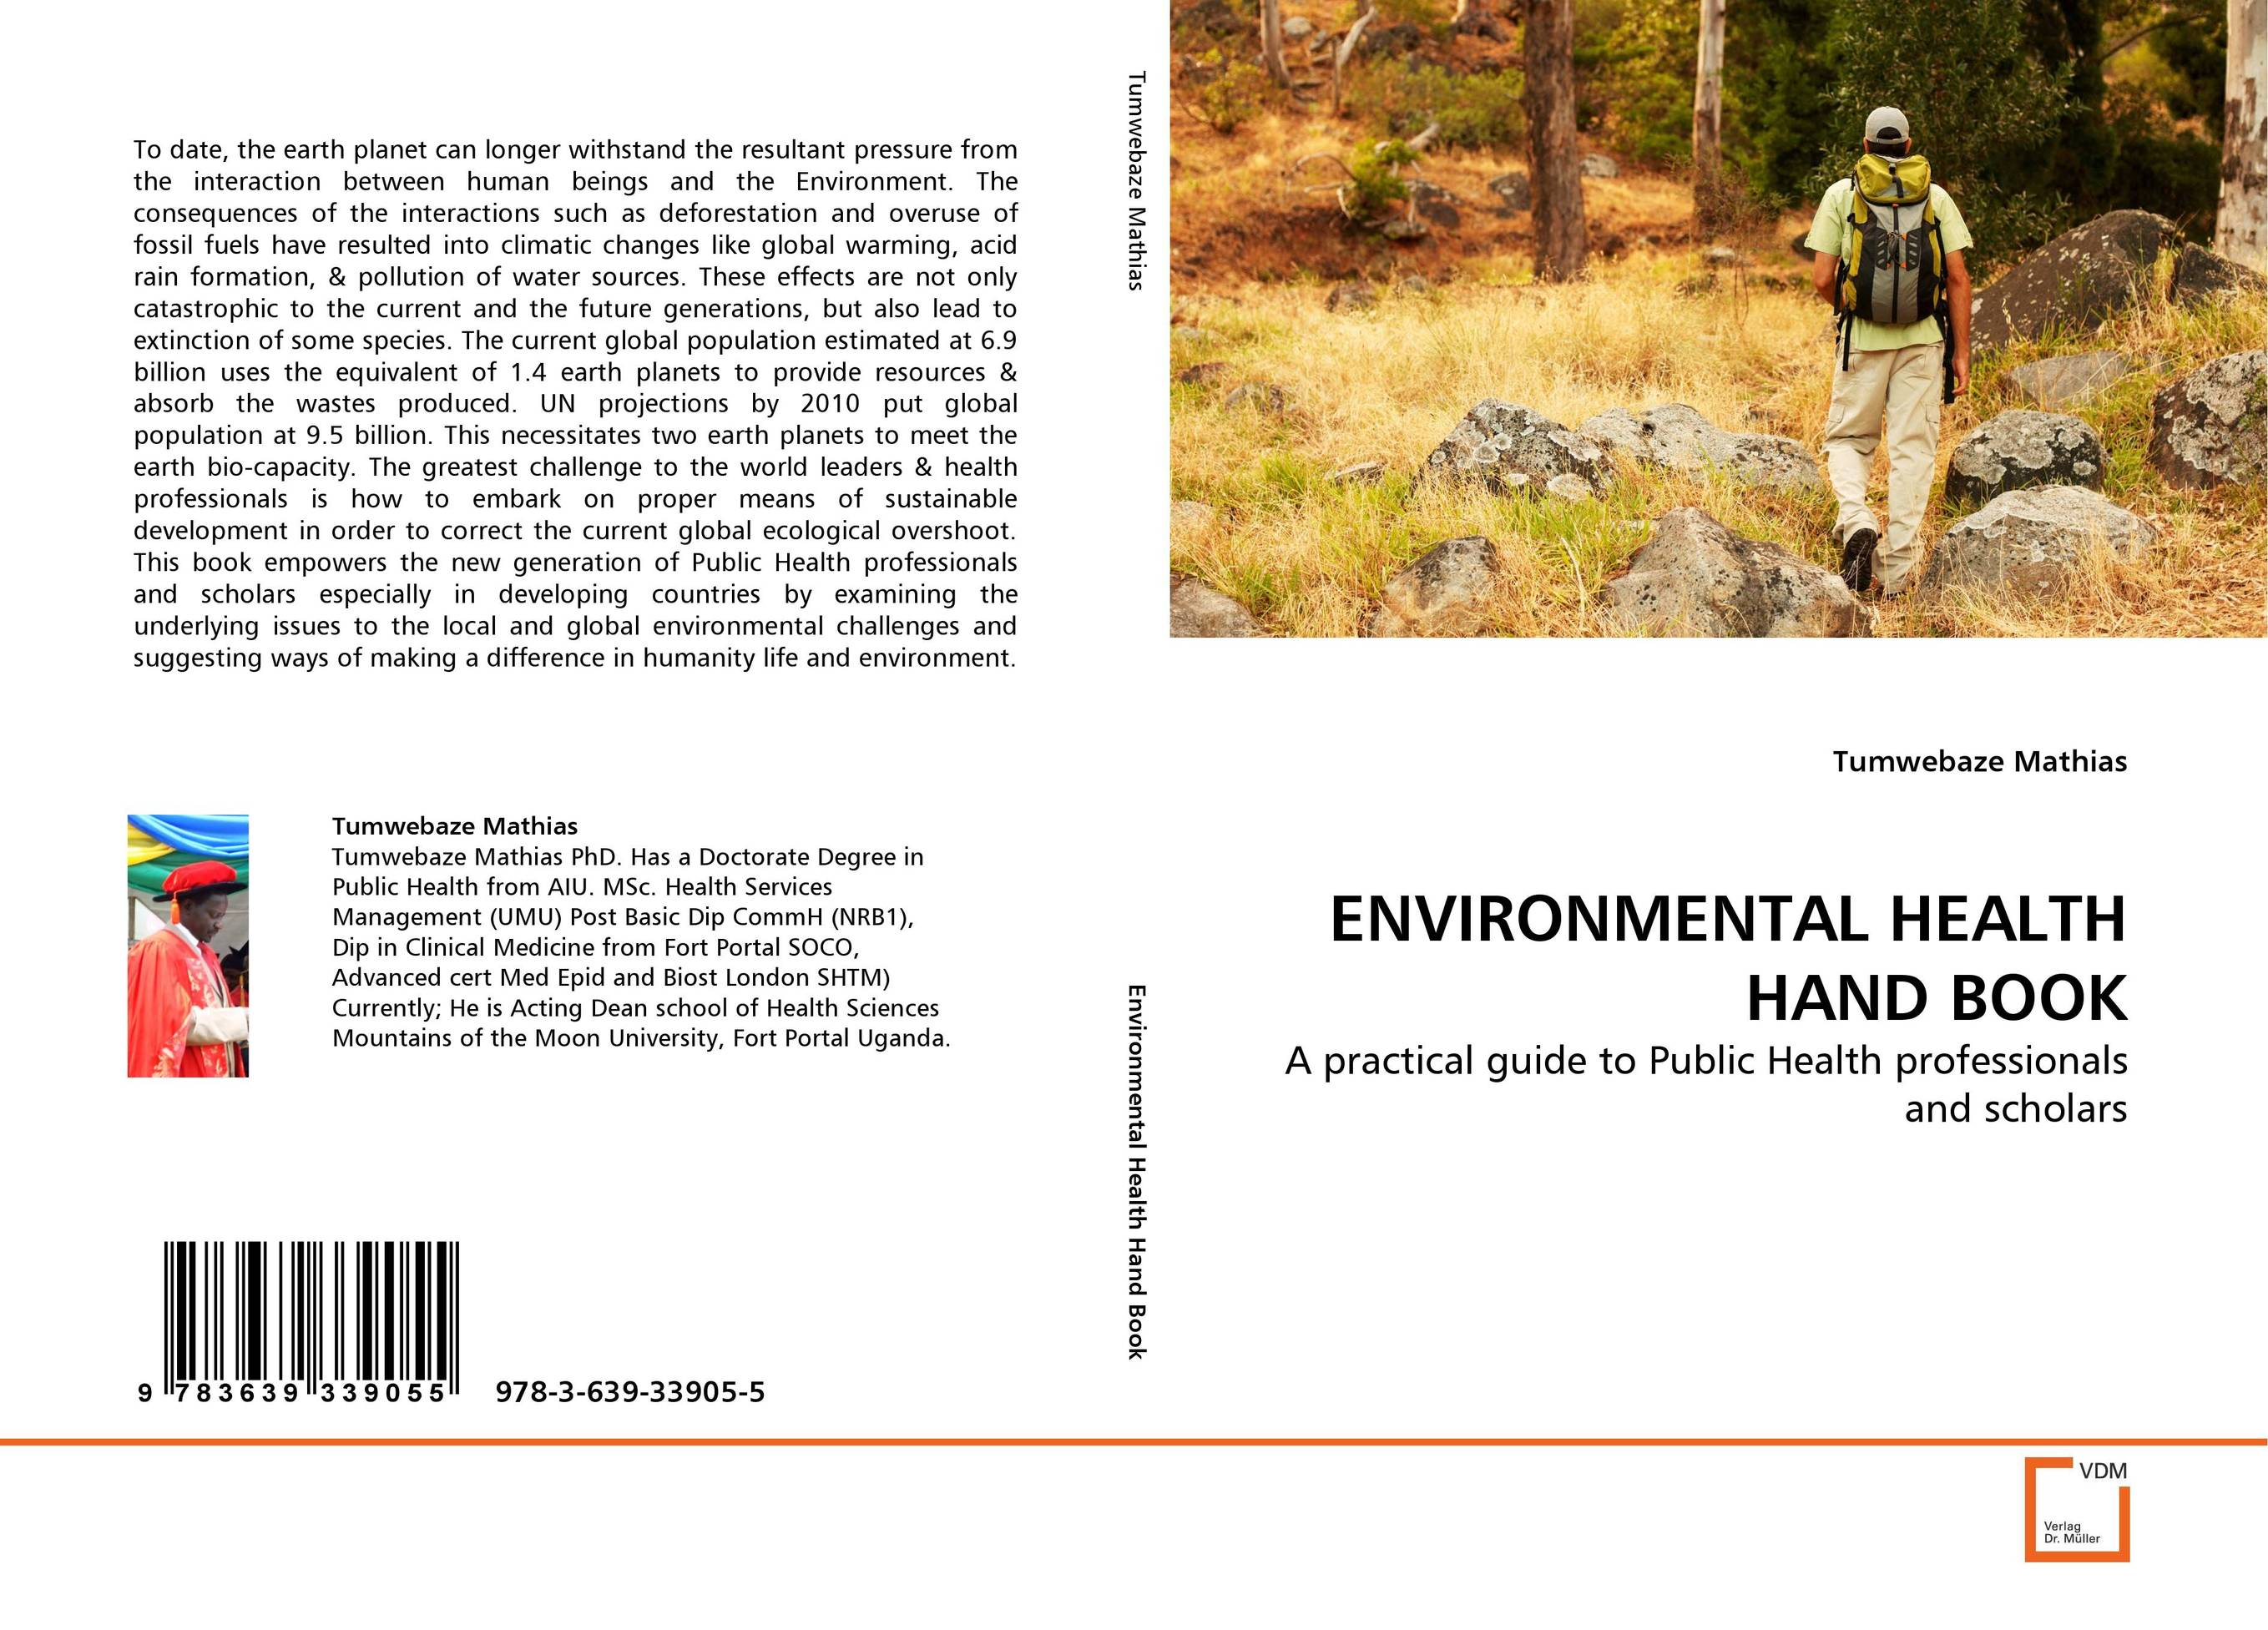 ENVIRONMENTAL HEALTH HAND BOOK from the earth to the moon